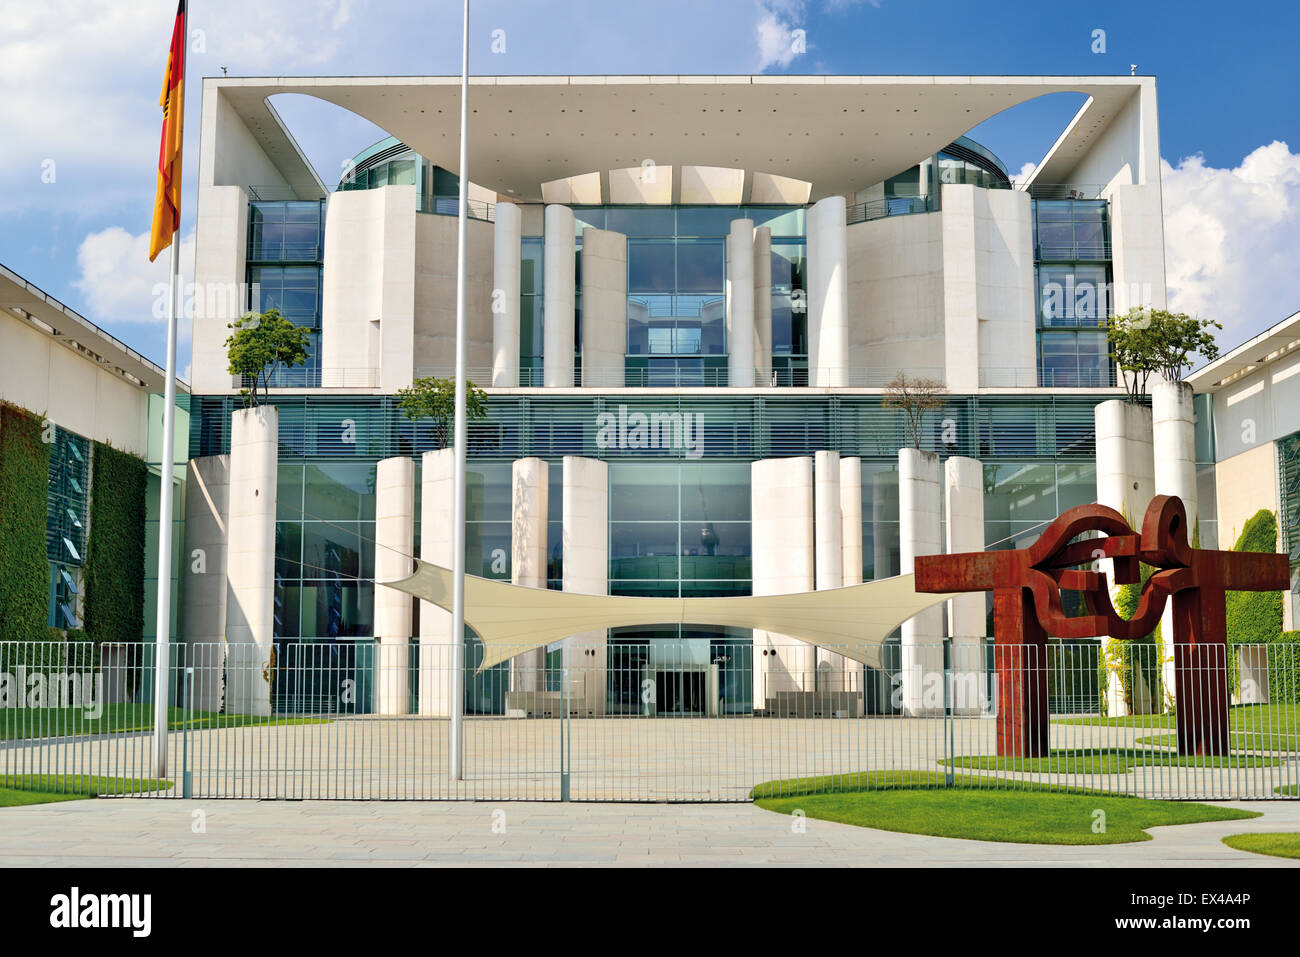 Germany, Berlin: Outside view of the building of the German Chancellery - Stock Image